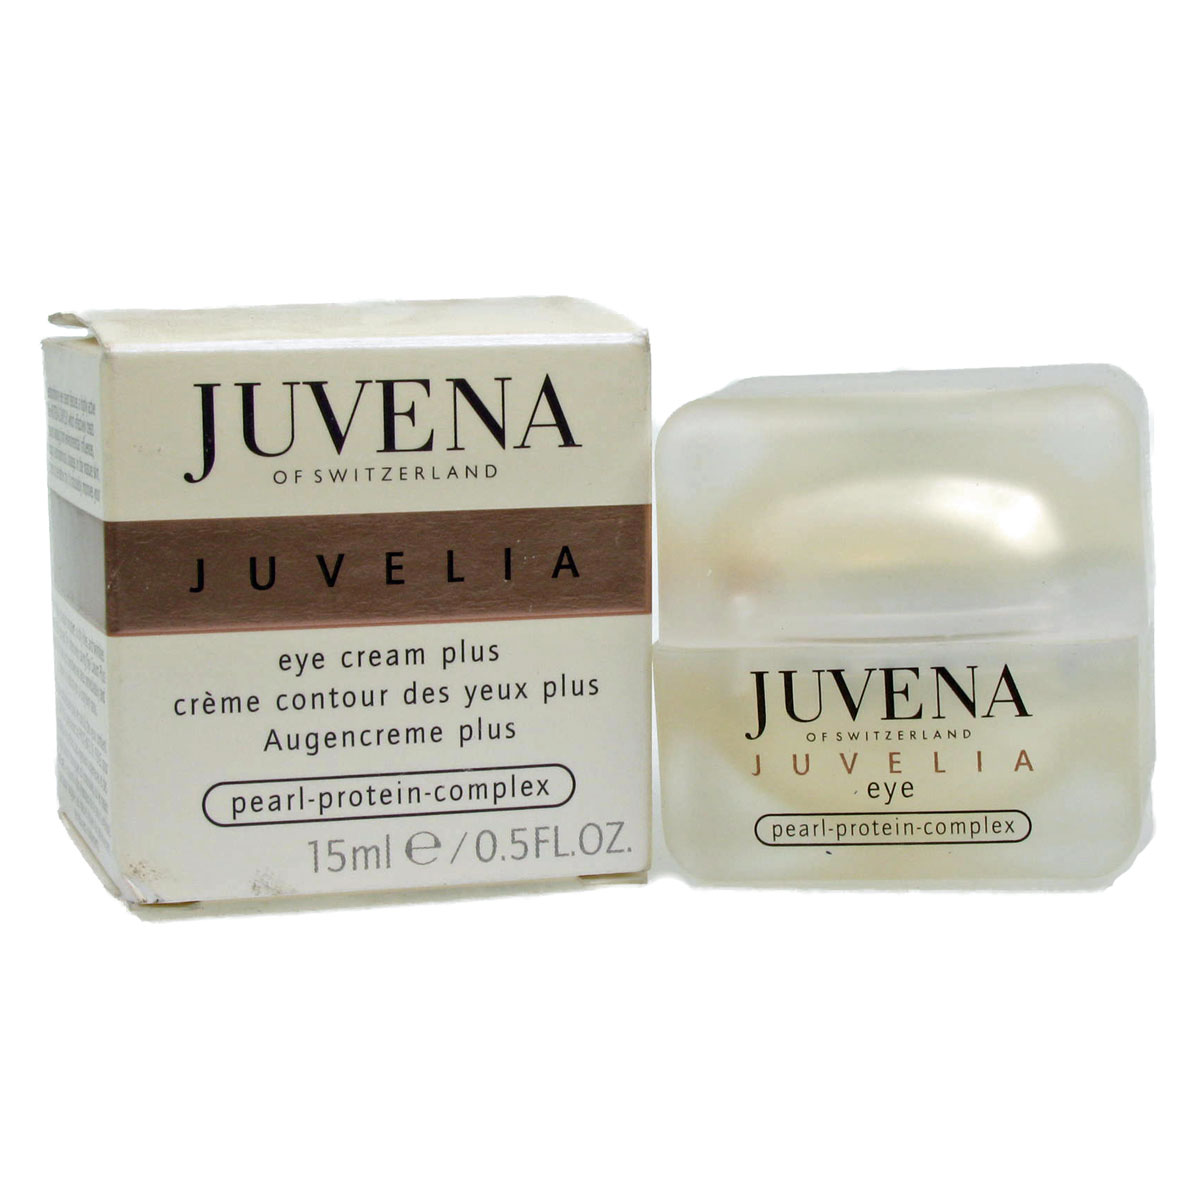 Juvena Juvelia Eye Cream Plus 15ml Free UK P&P BNIB Enlarged Preview